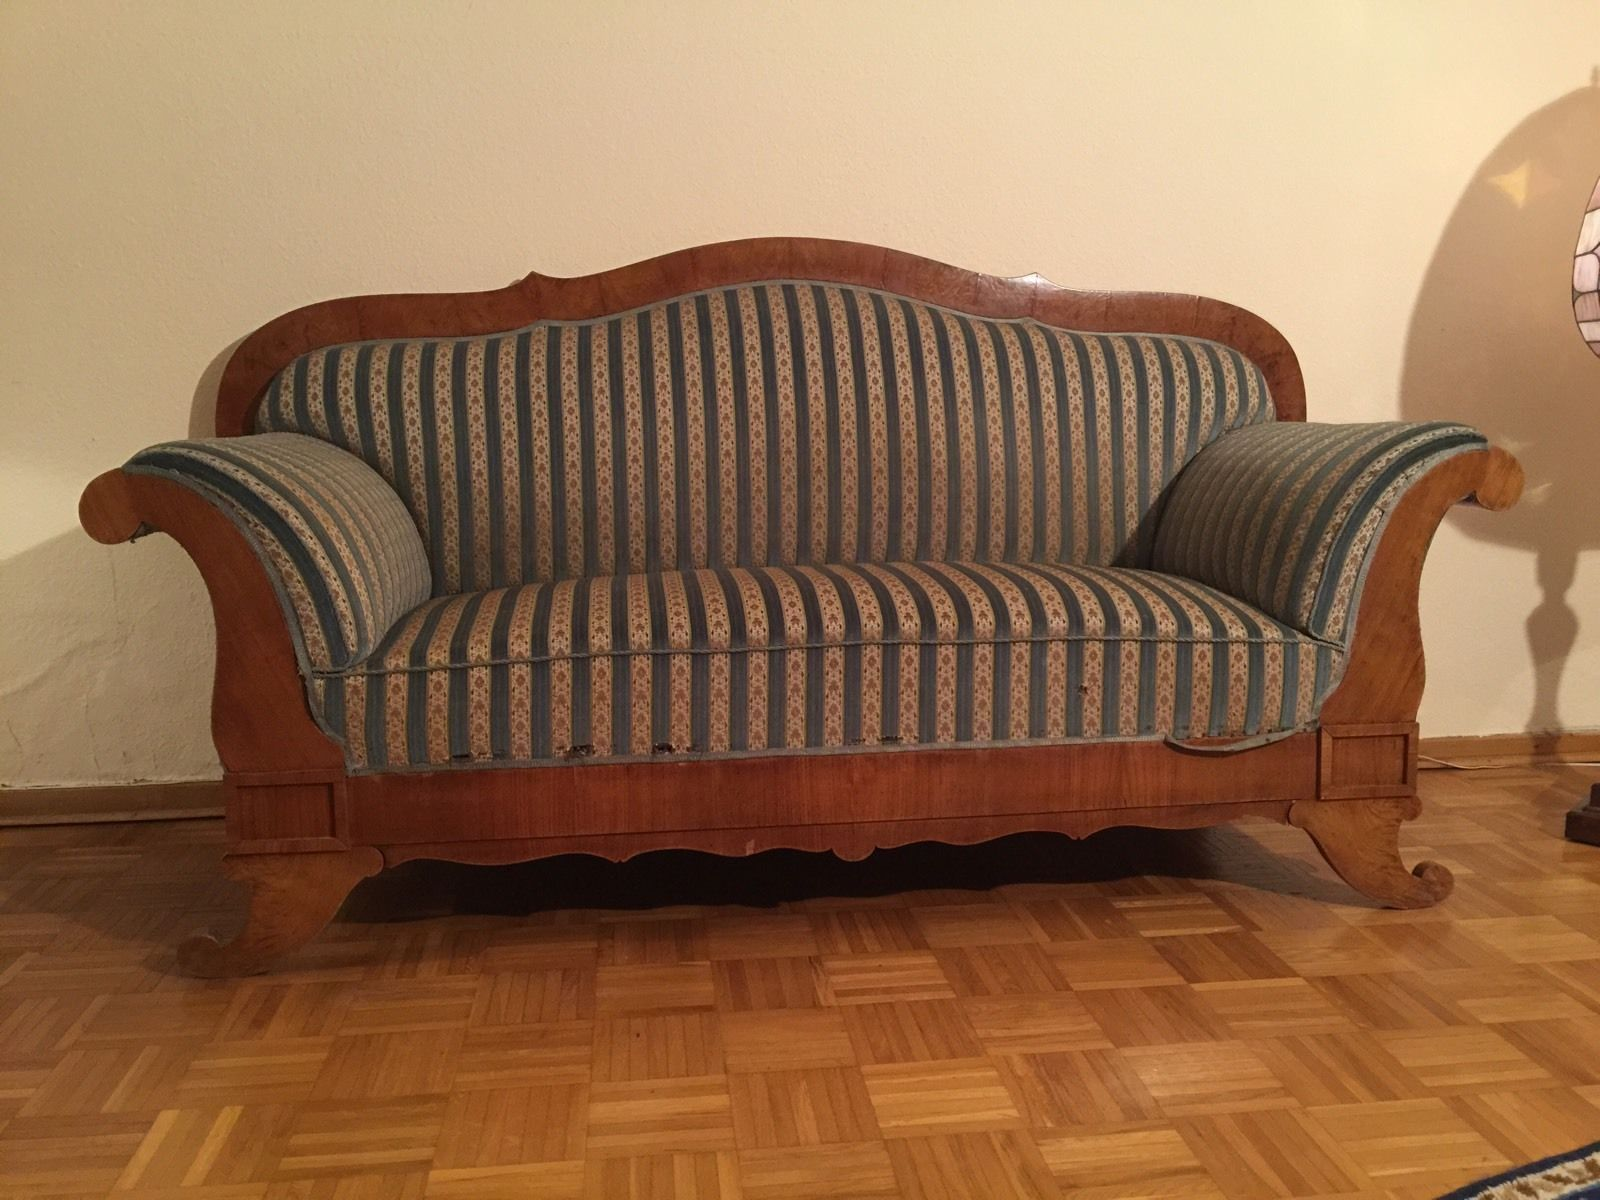 Hand carved amp upholstered chair late 1800 s grand rapids mi area - Antikes Biedermeier Sofa Ebay